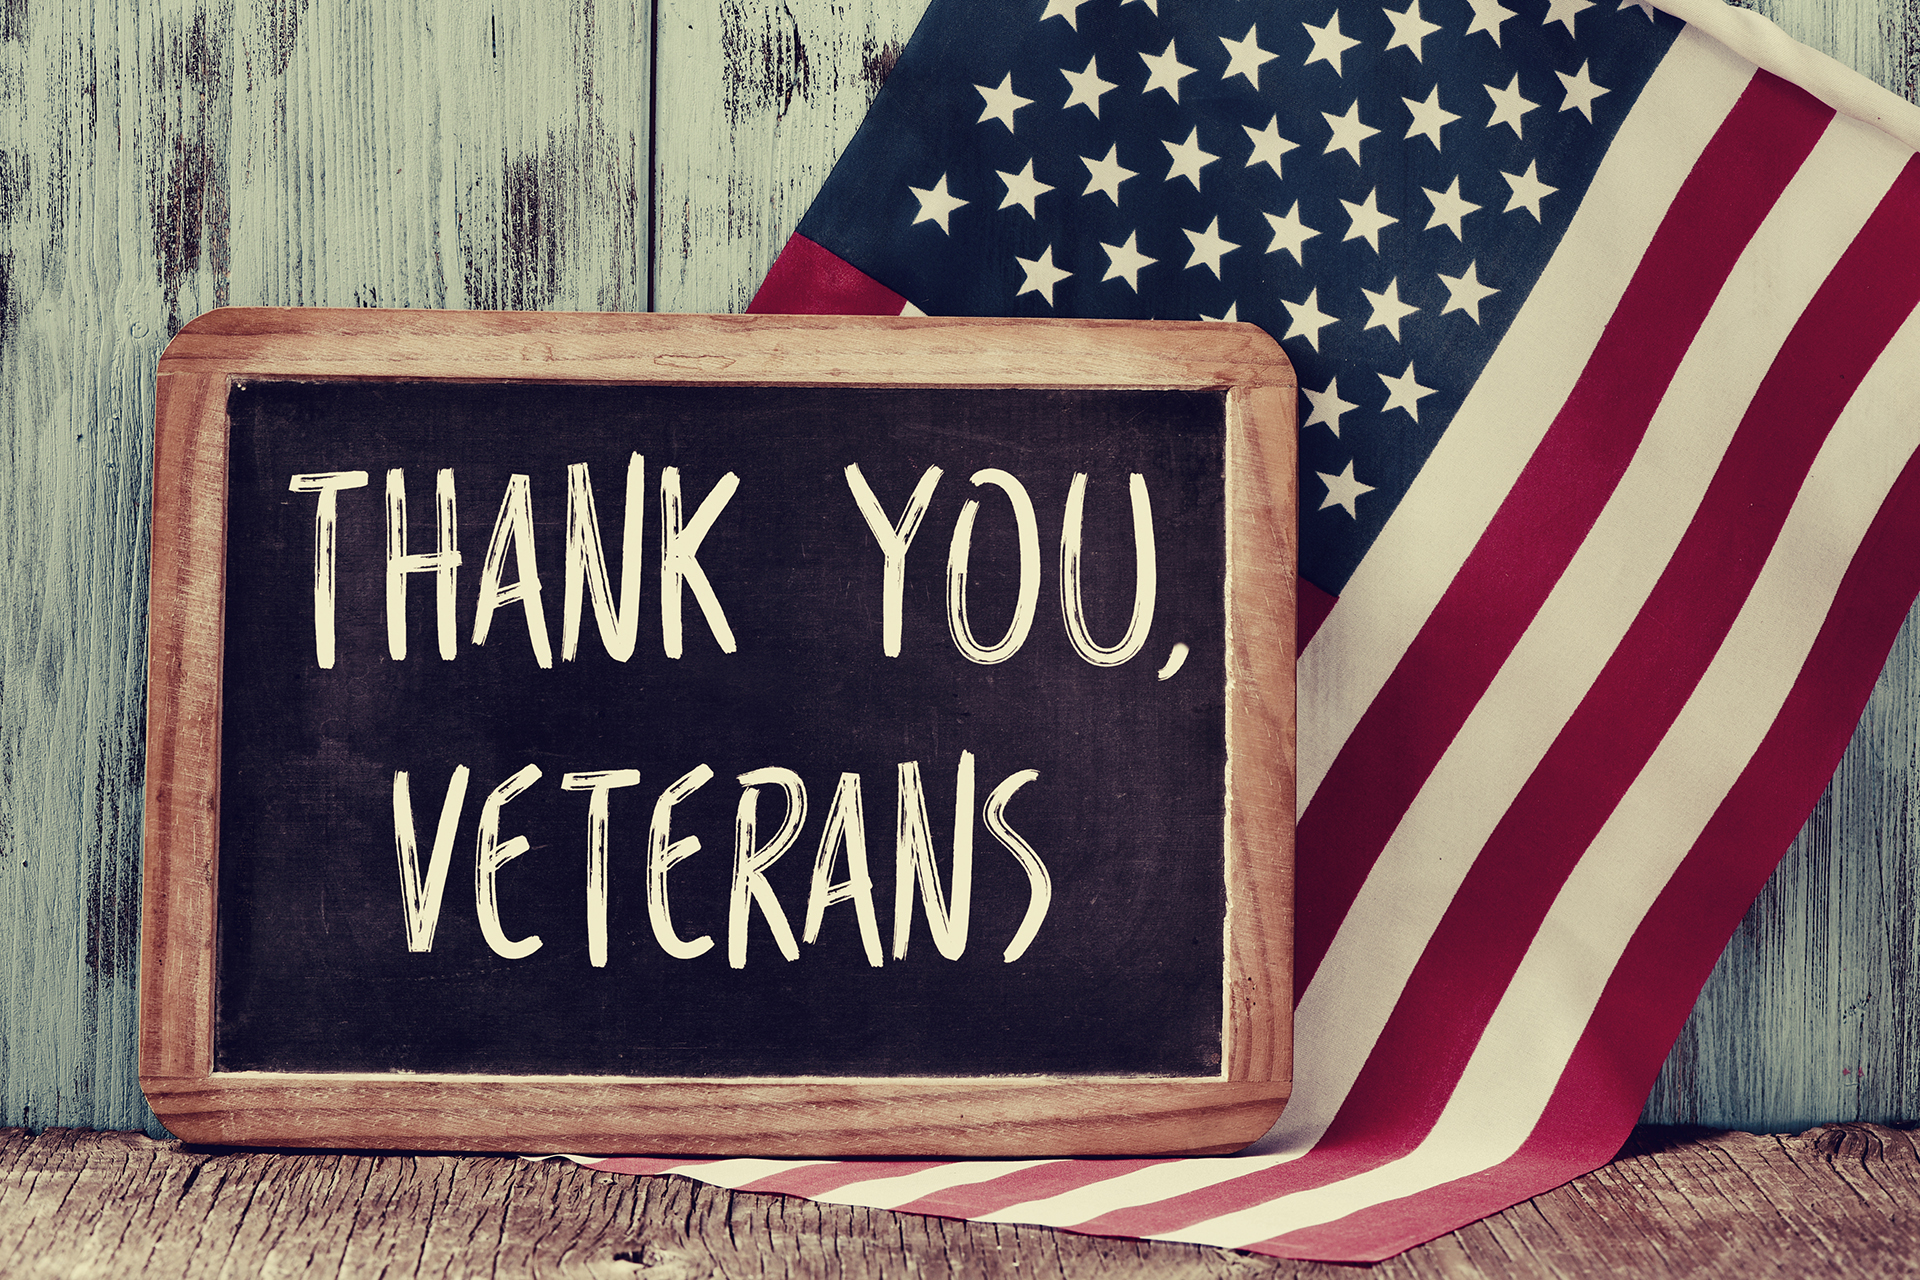 Thank you to our Veterans & Military personnel for your service